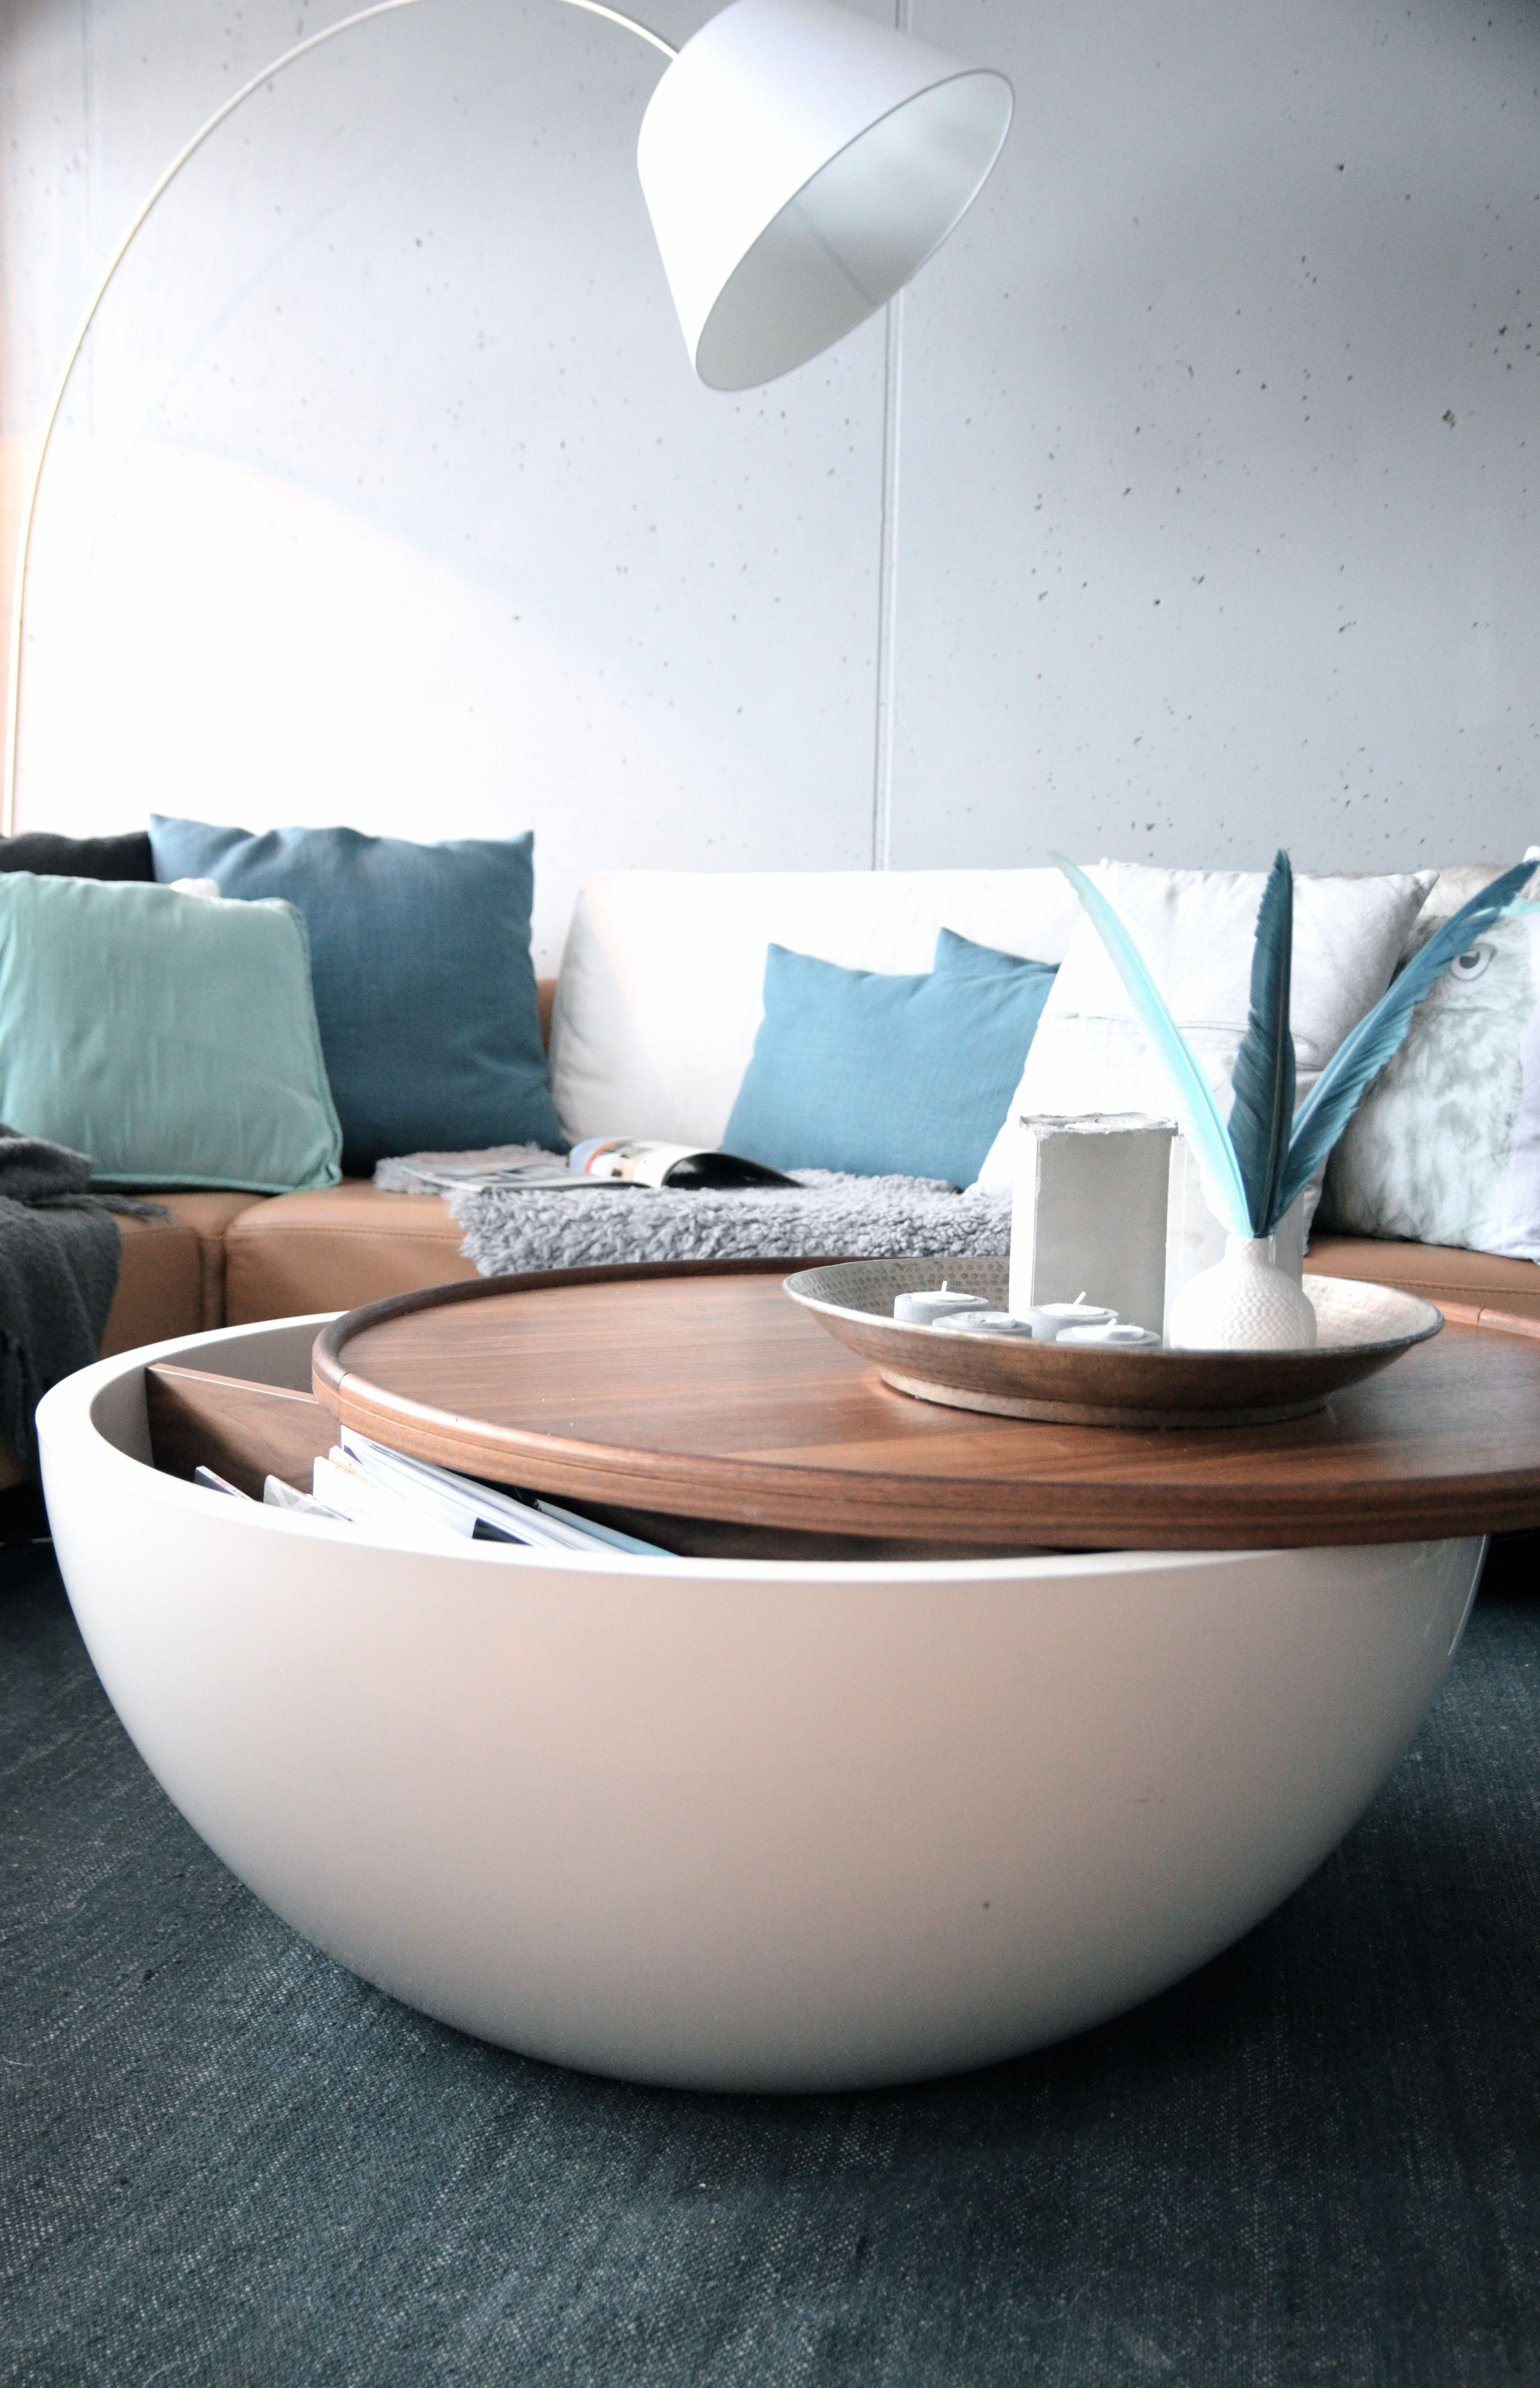 Unique Coffee Table With Amazing Storage Options For Your Modern